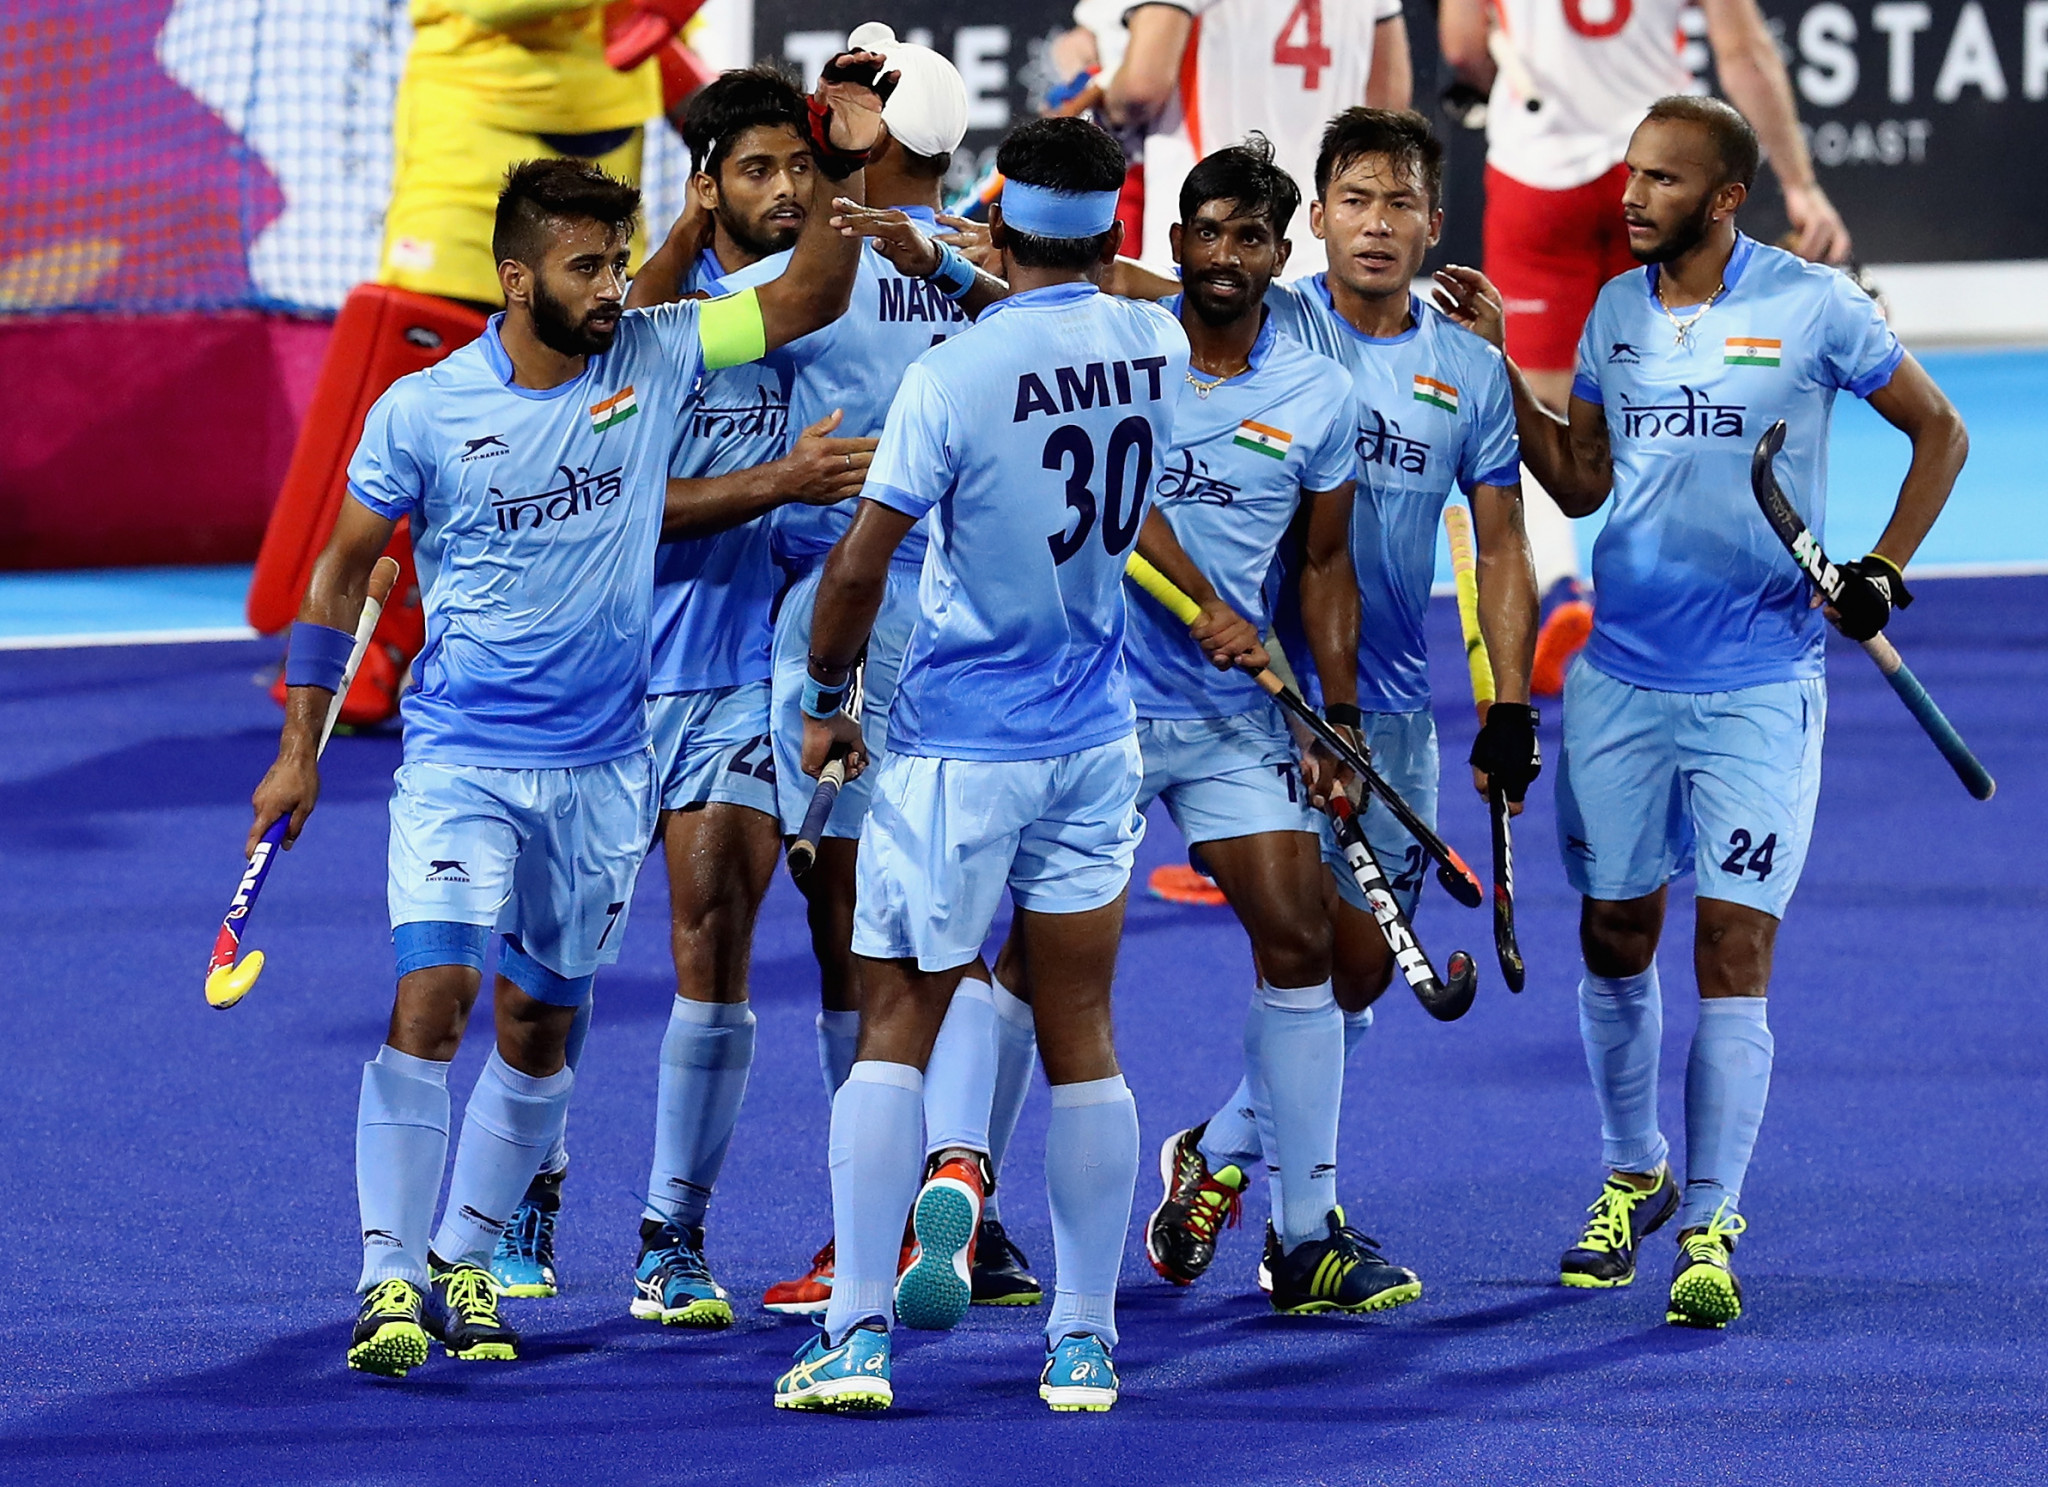 India withdraws hockey teams from 2022 Commonwealth Games because of coronavirus concerns